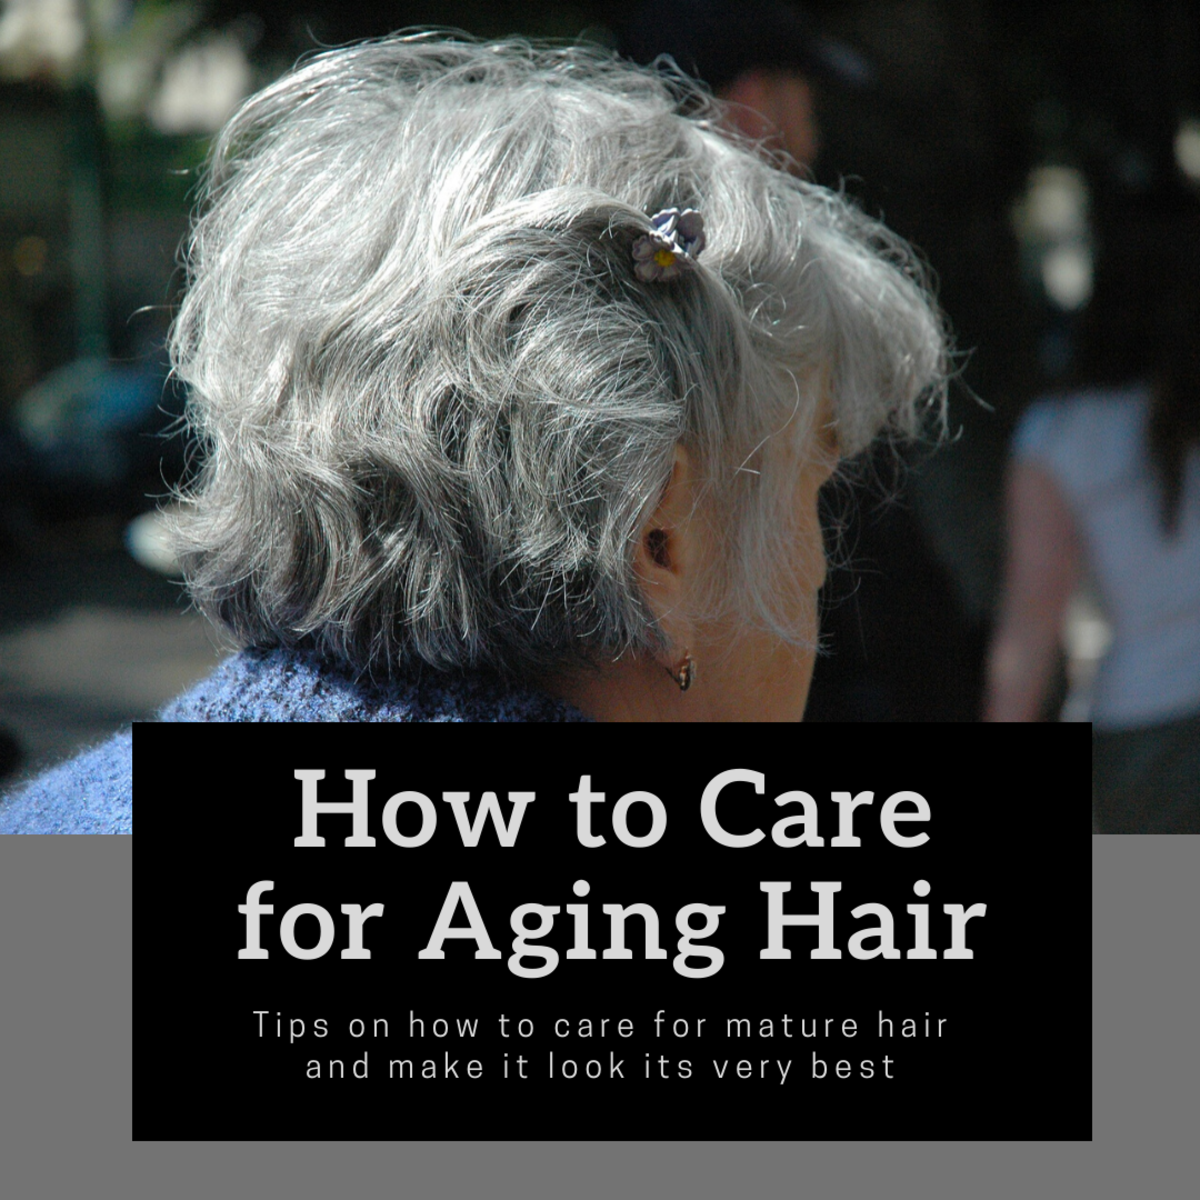 This guide will provide tips and guidance on how to make mature hair look its best, regardless of age.